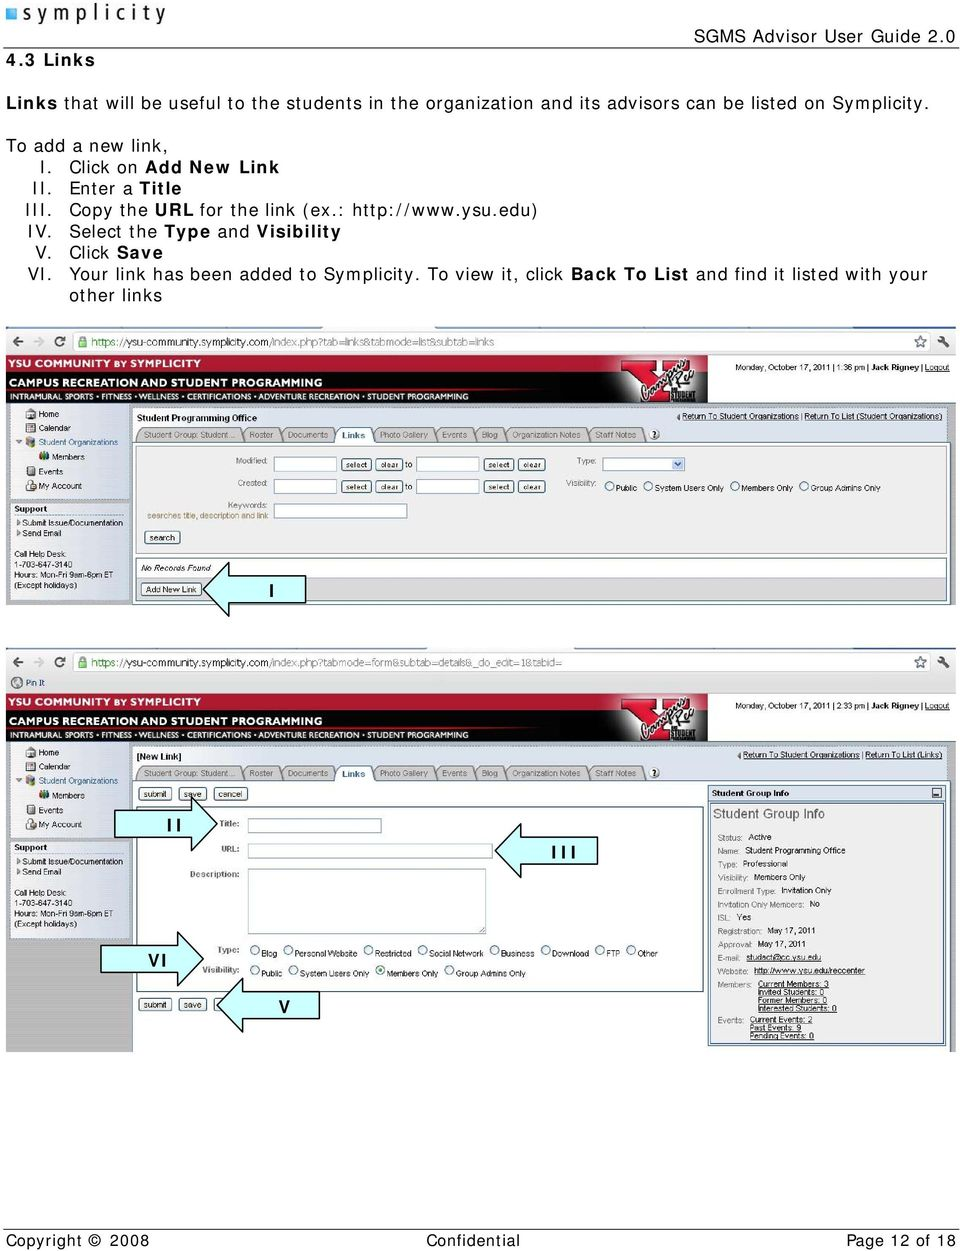 : http://www.ysu.edu) IV. Select the Type and Visibility V. Click Save VI. Your link has been added to Symplicity.